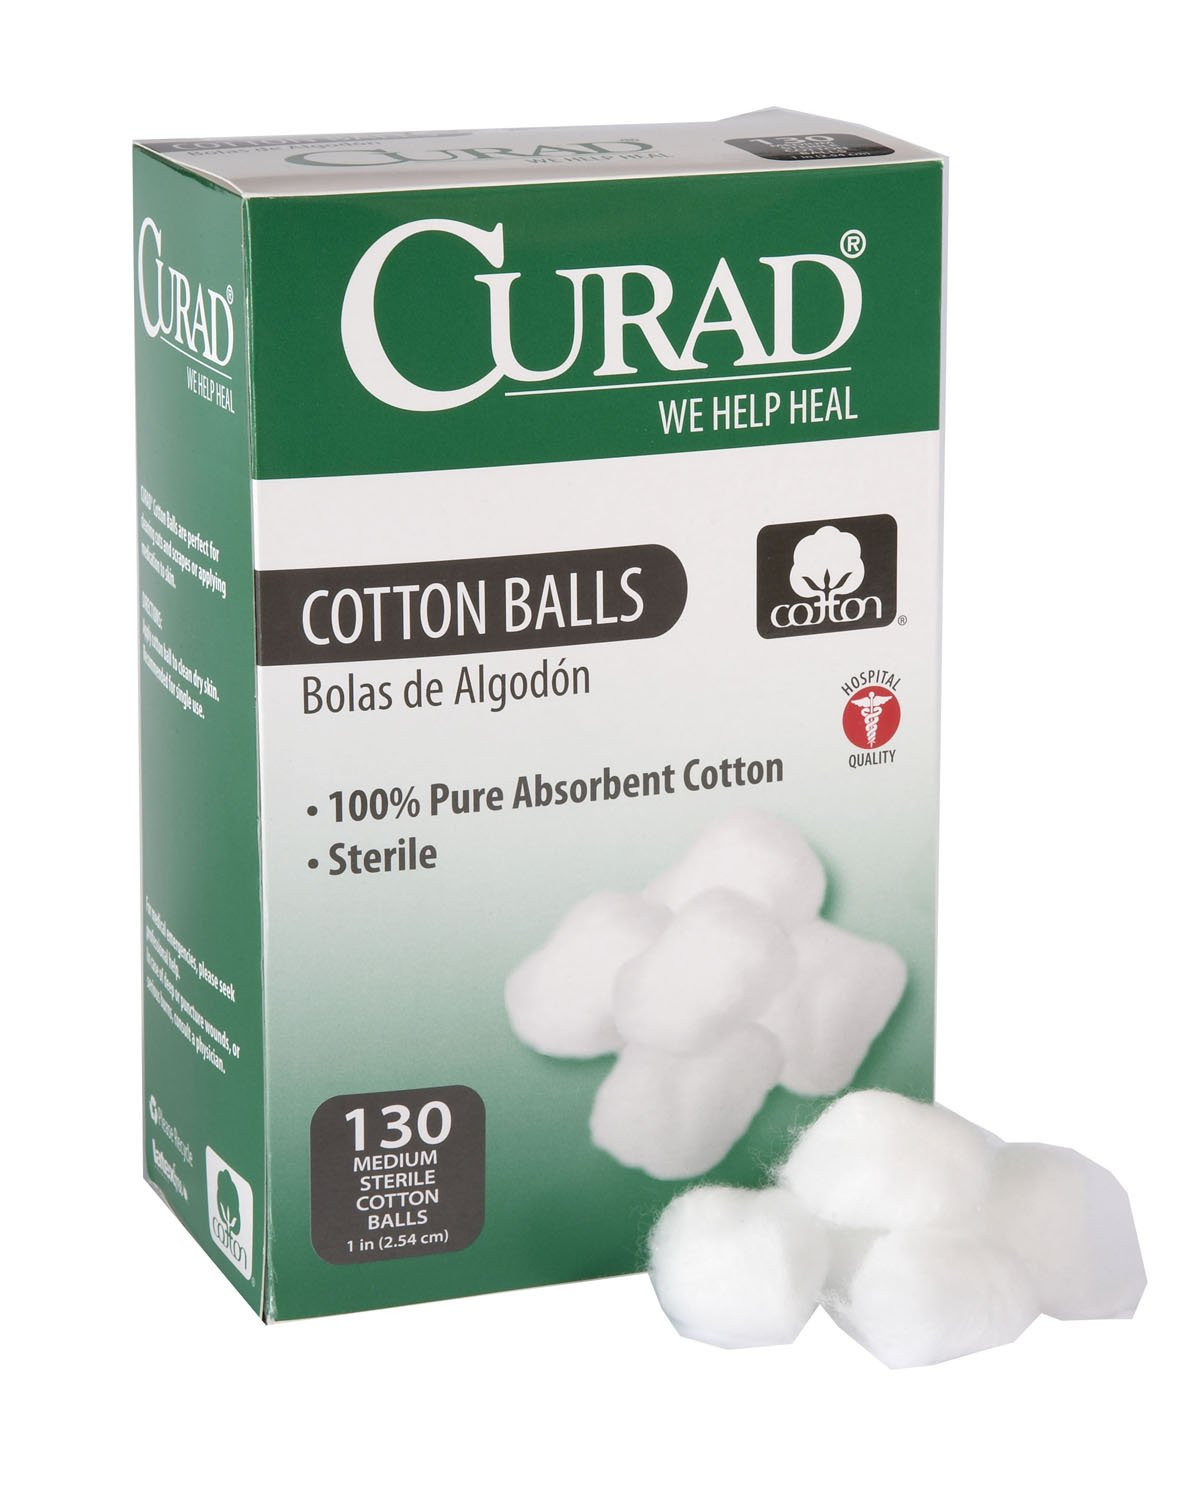 Curad Cotton Balls 130 Each (Pack of 6)